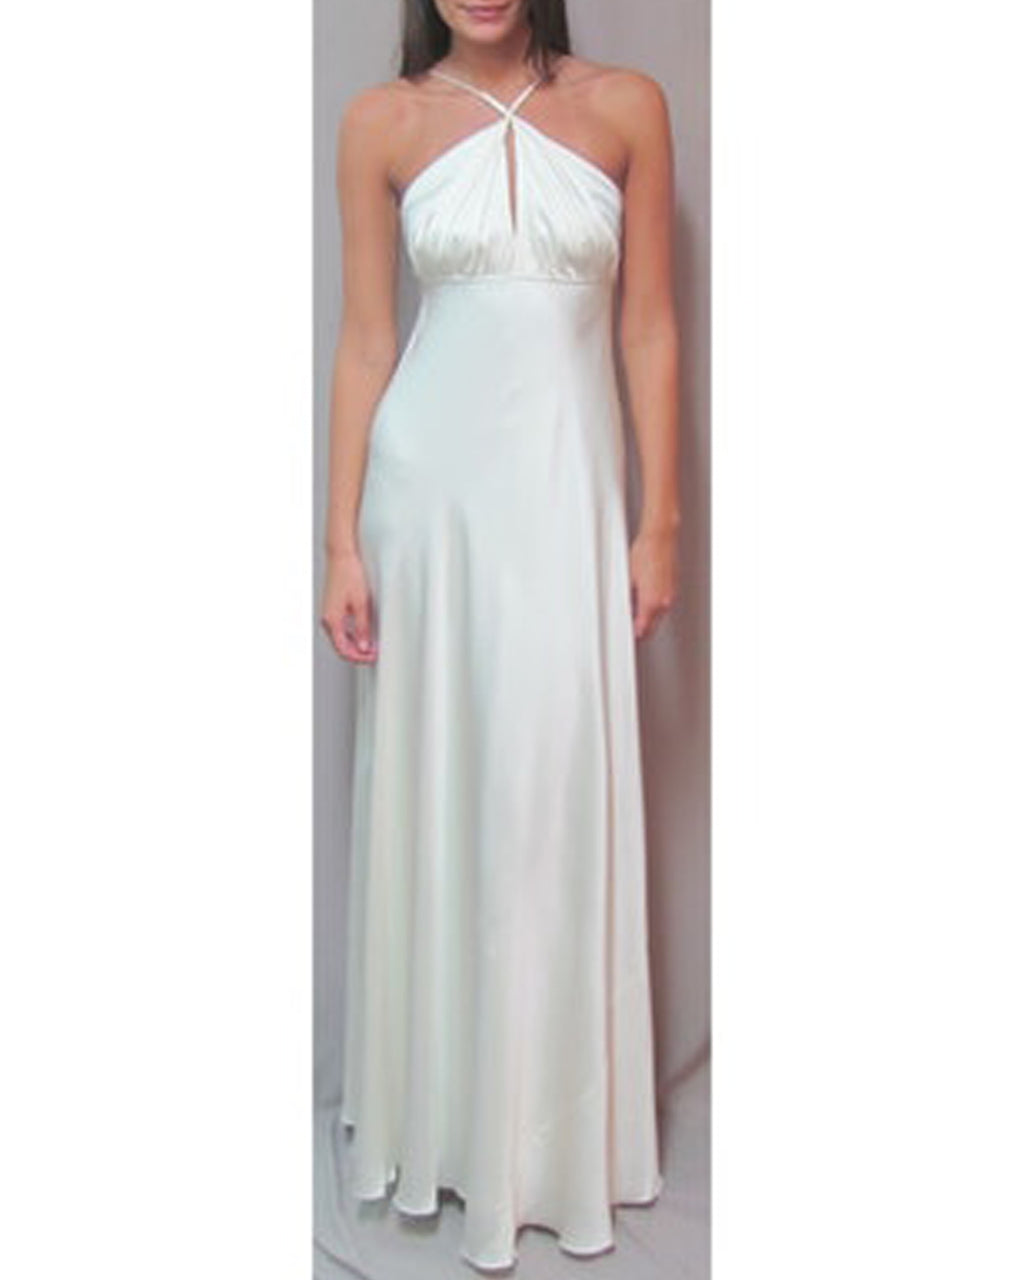 EC0009 - halter gown with key hole - samples - bridal - Final Sale Add 1 line break BRIDAL GOWN